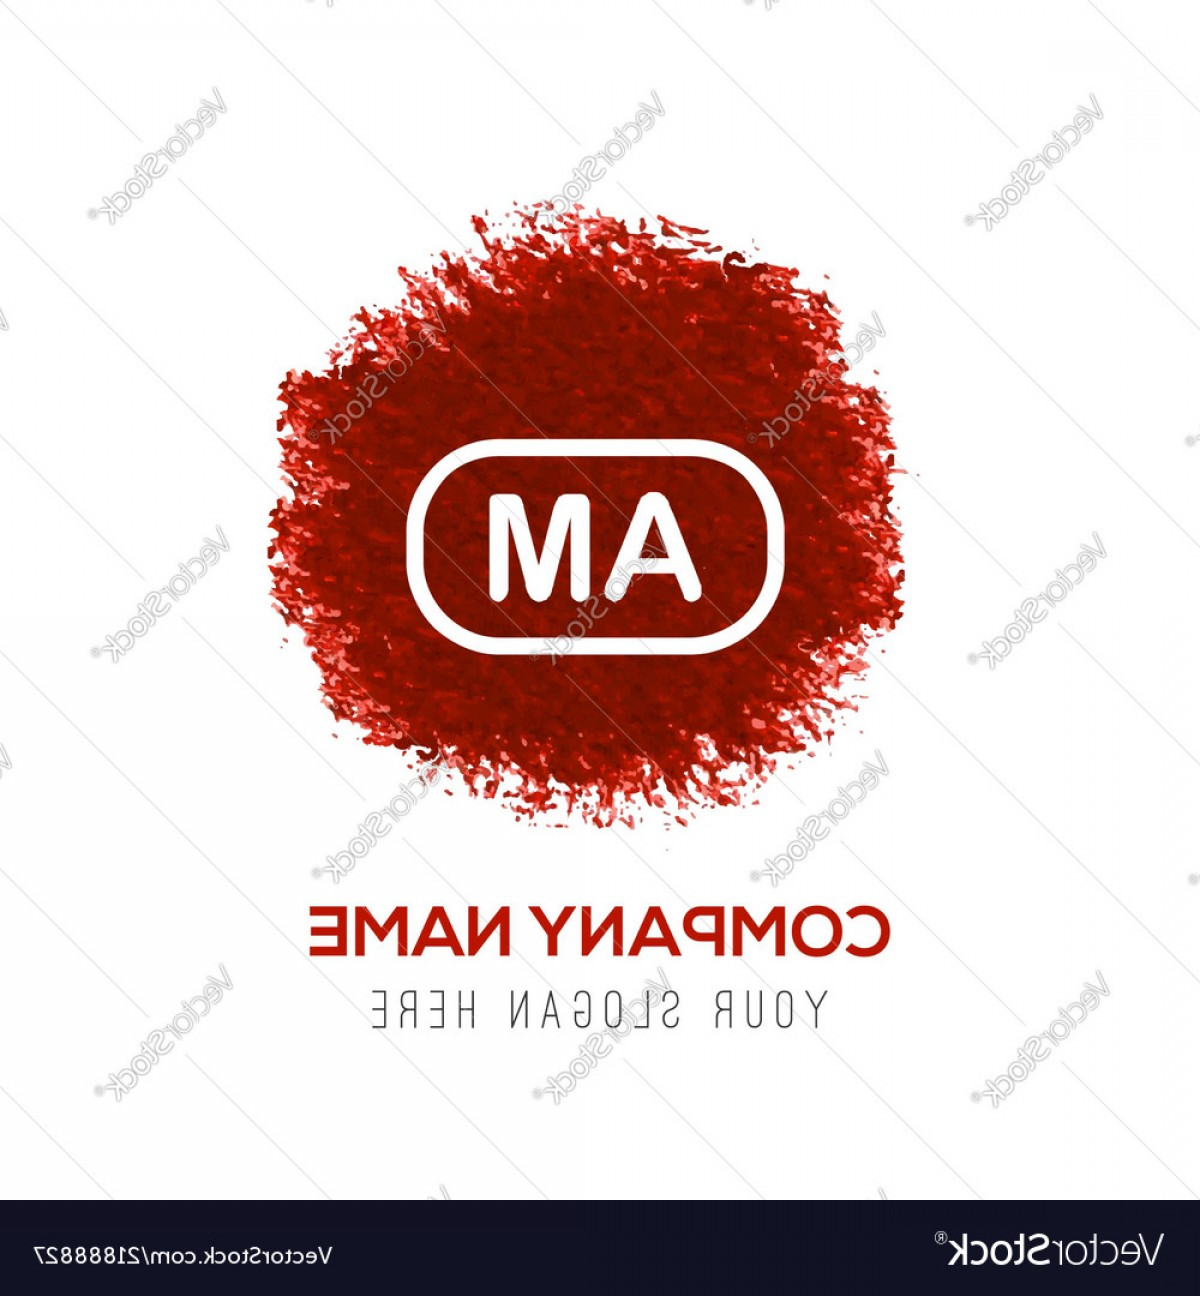 Radio Frequency Vector: Am Radio Frequency Icon Red Watercolor Circle Vector